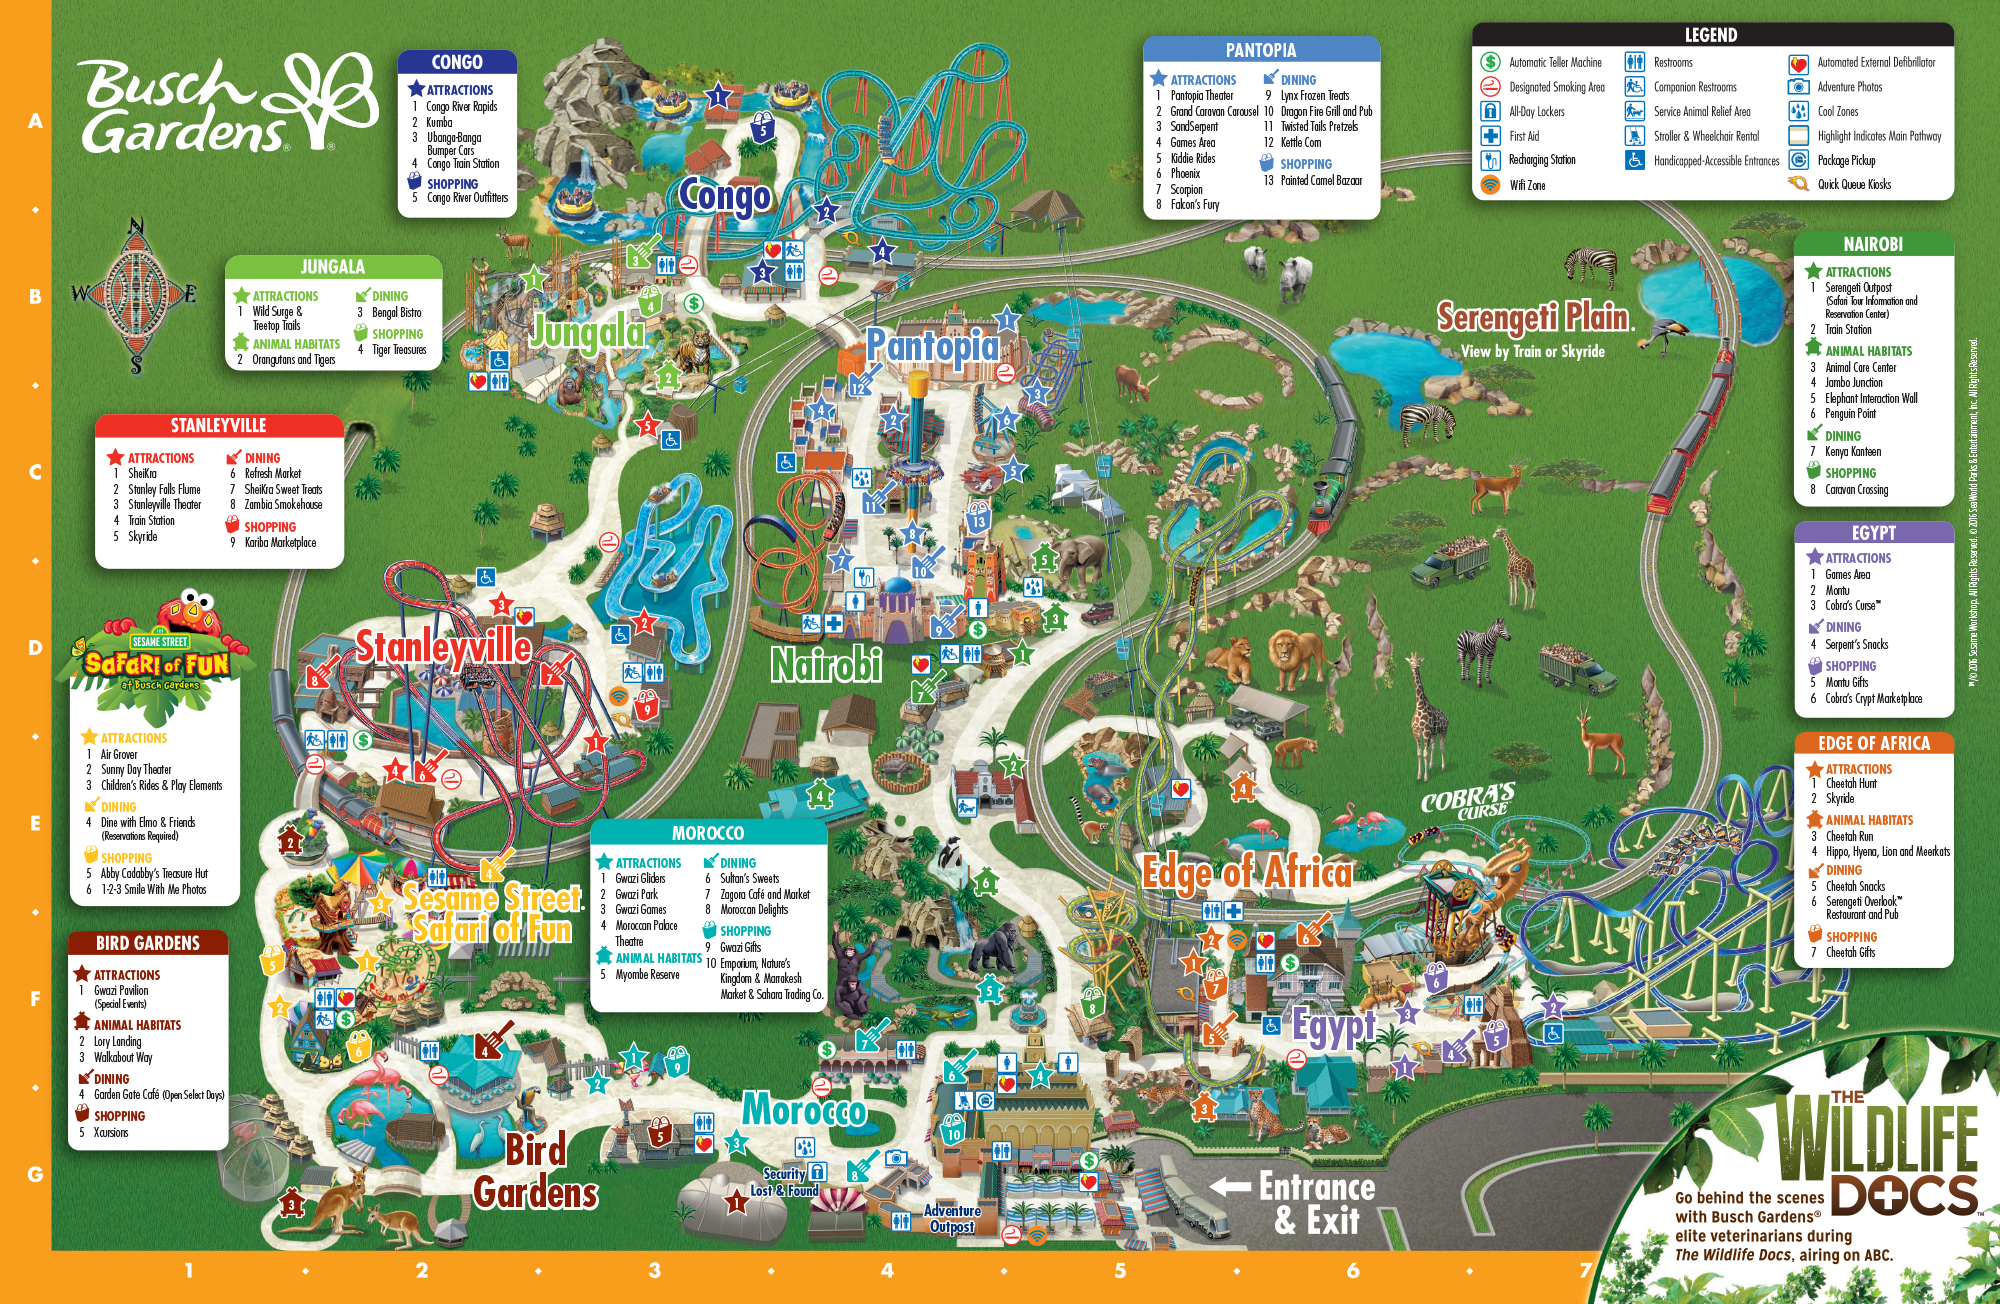 ad6cf9f5f5d6100be74d321409b3cf00 - Directions To Busch Gardens Tampa Florida